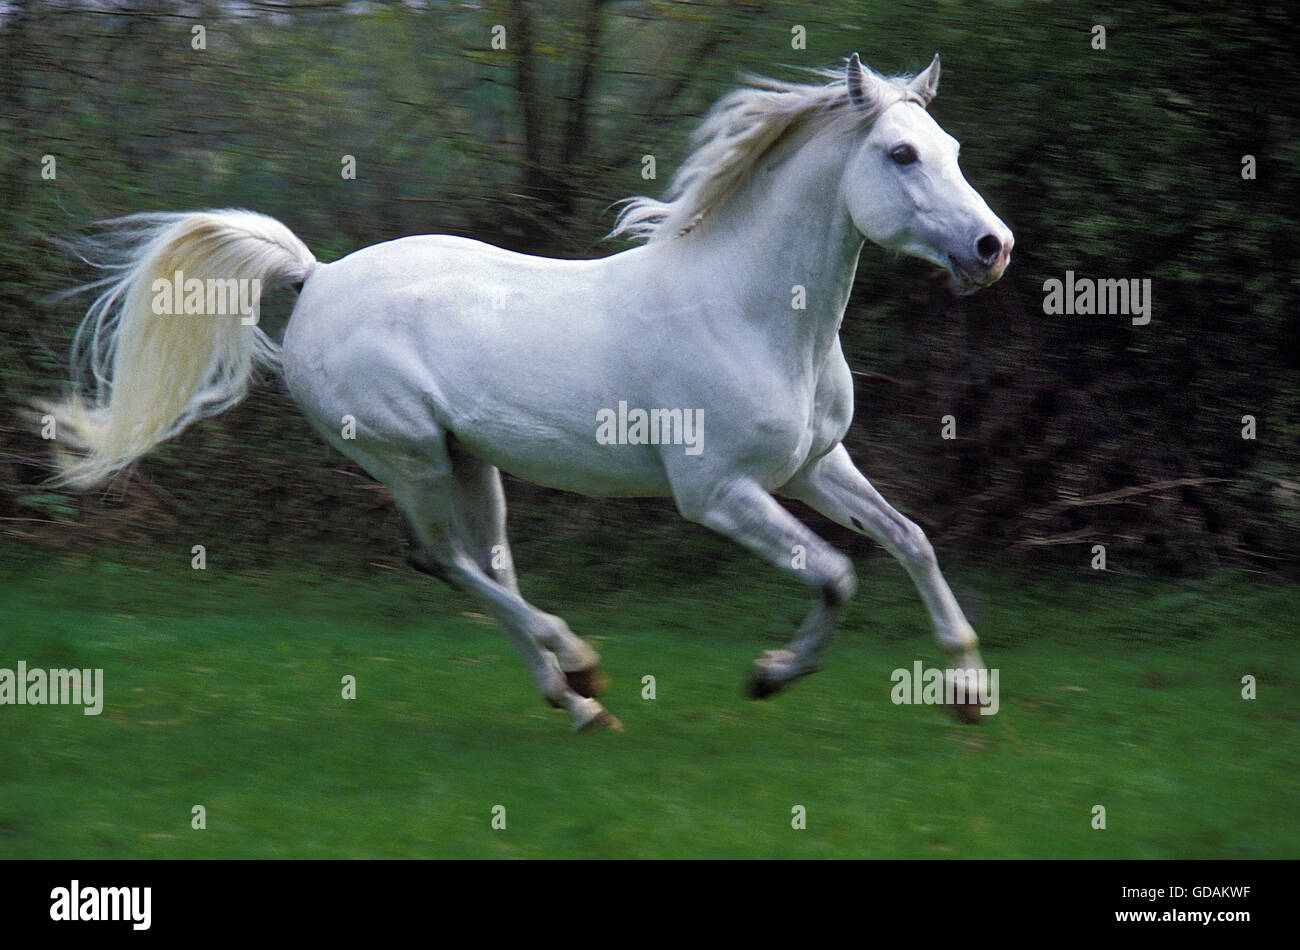 Arabian Horse Galloping Stock Photo Alamy